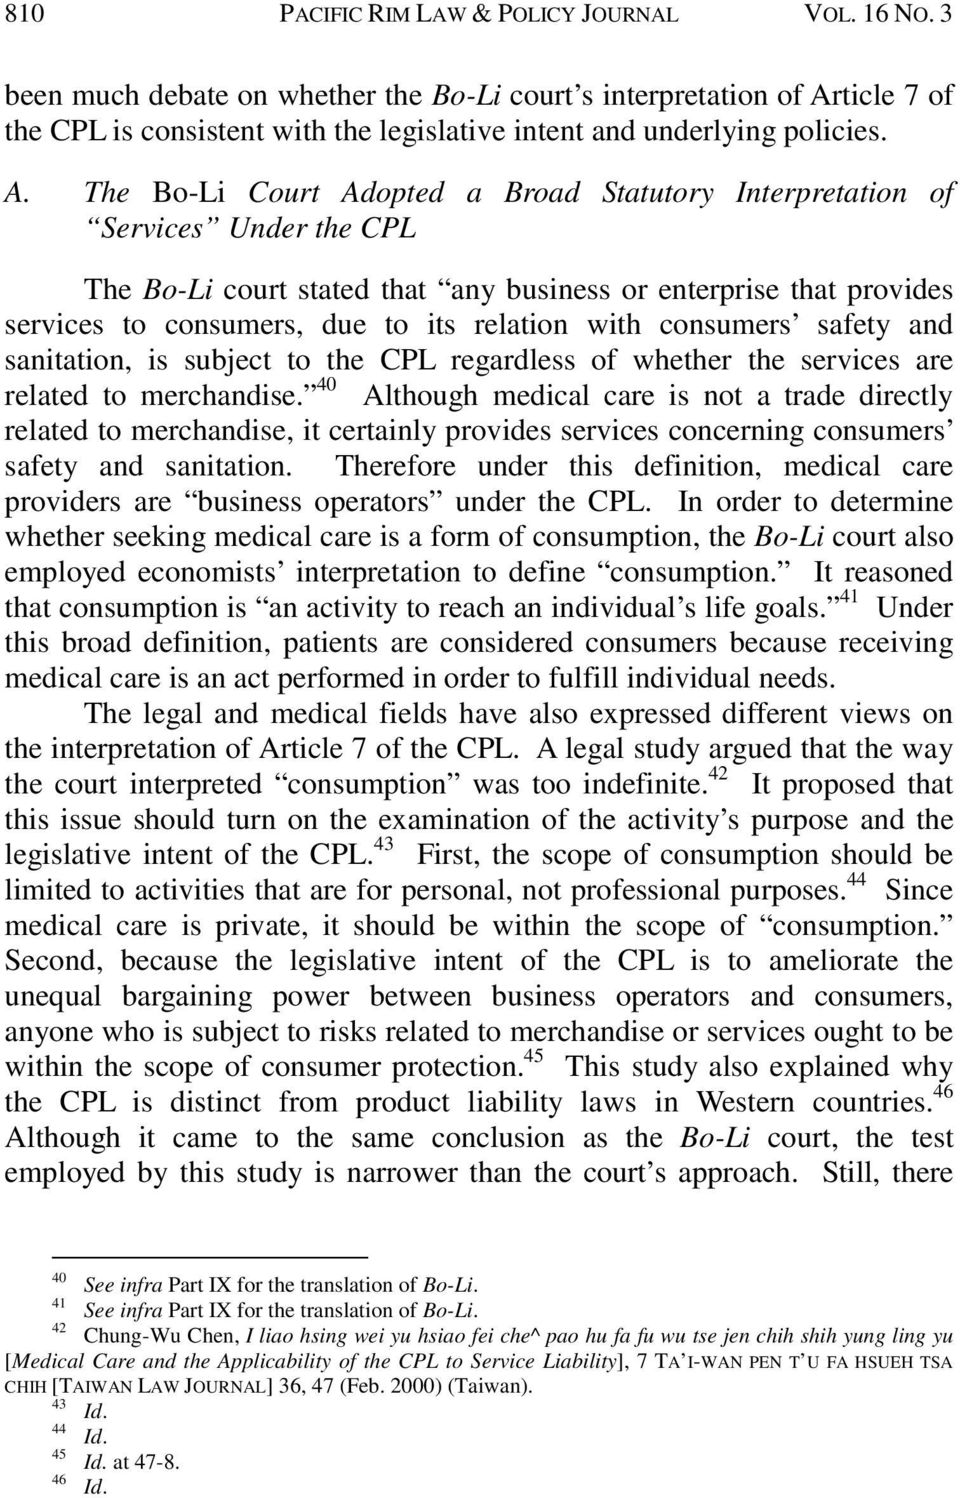 ticle 7 of the CPL is consistent with the legislative intent and underlying policies. A.